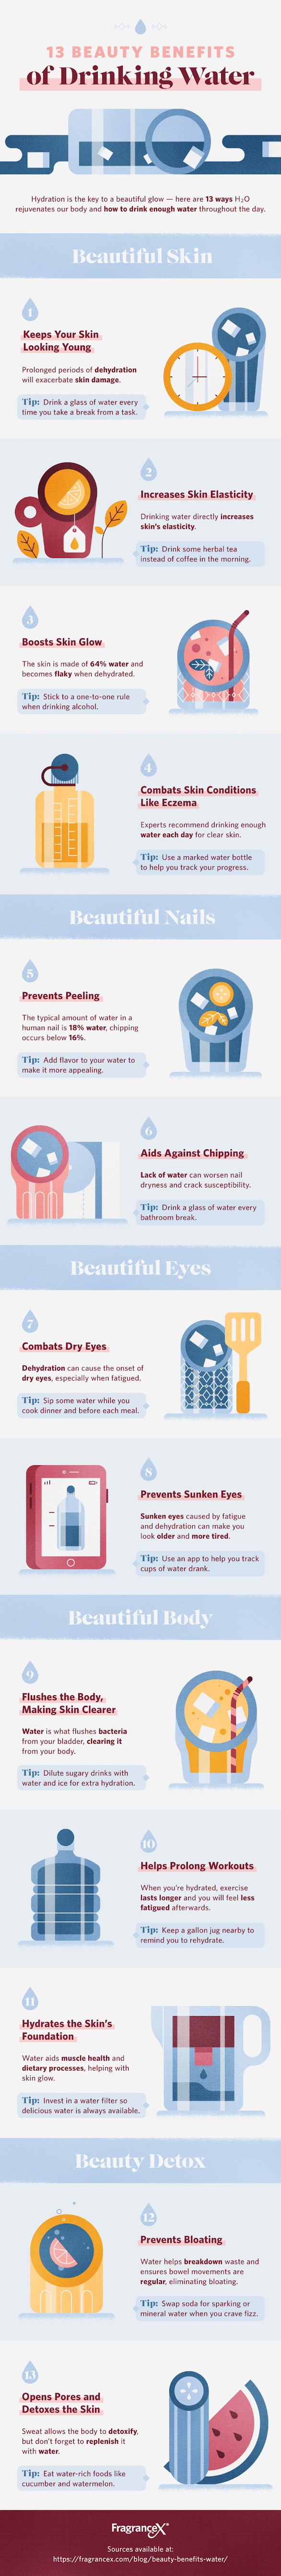 13 Beauty Benefits of Drinking Water #infographic #Drinking Water #Water Benefits #Health & Beauty #Beauty